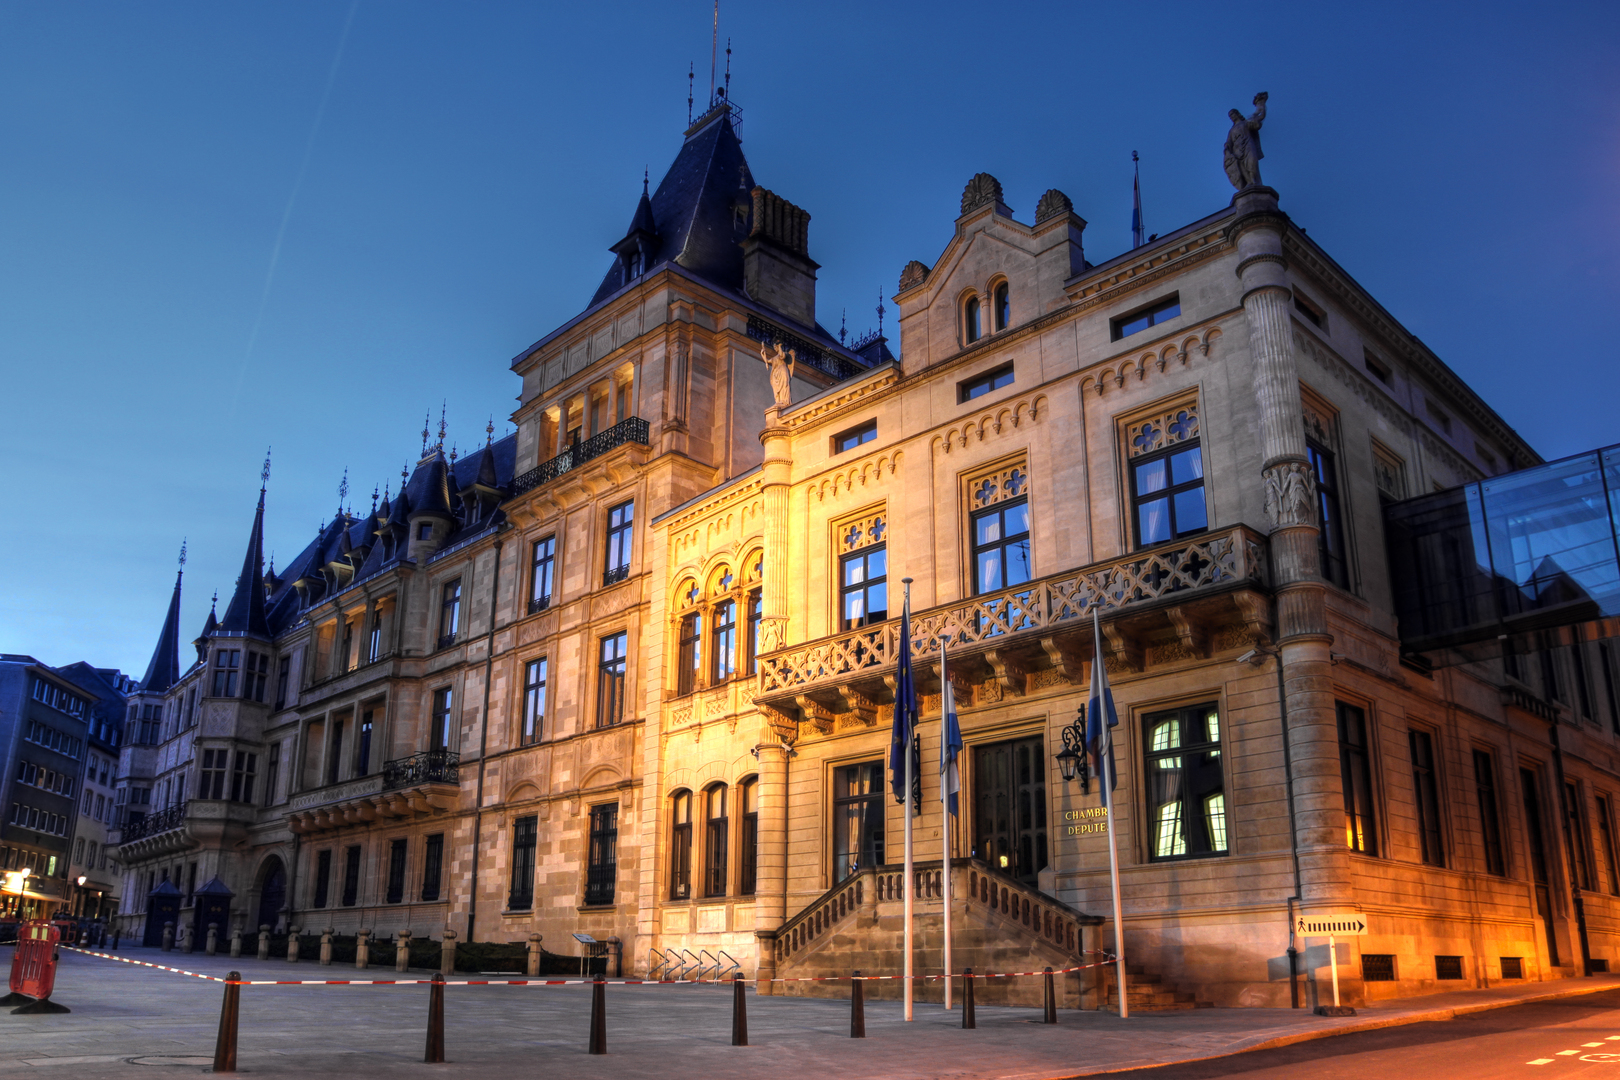 Grand Ducal Palace and the Chamber of Deputies, Luxembourg city, Grand Duchy of Luxembourg